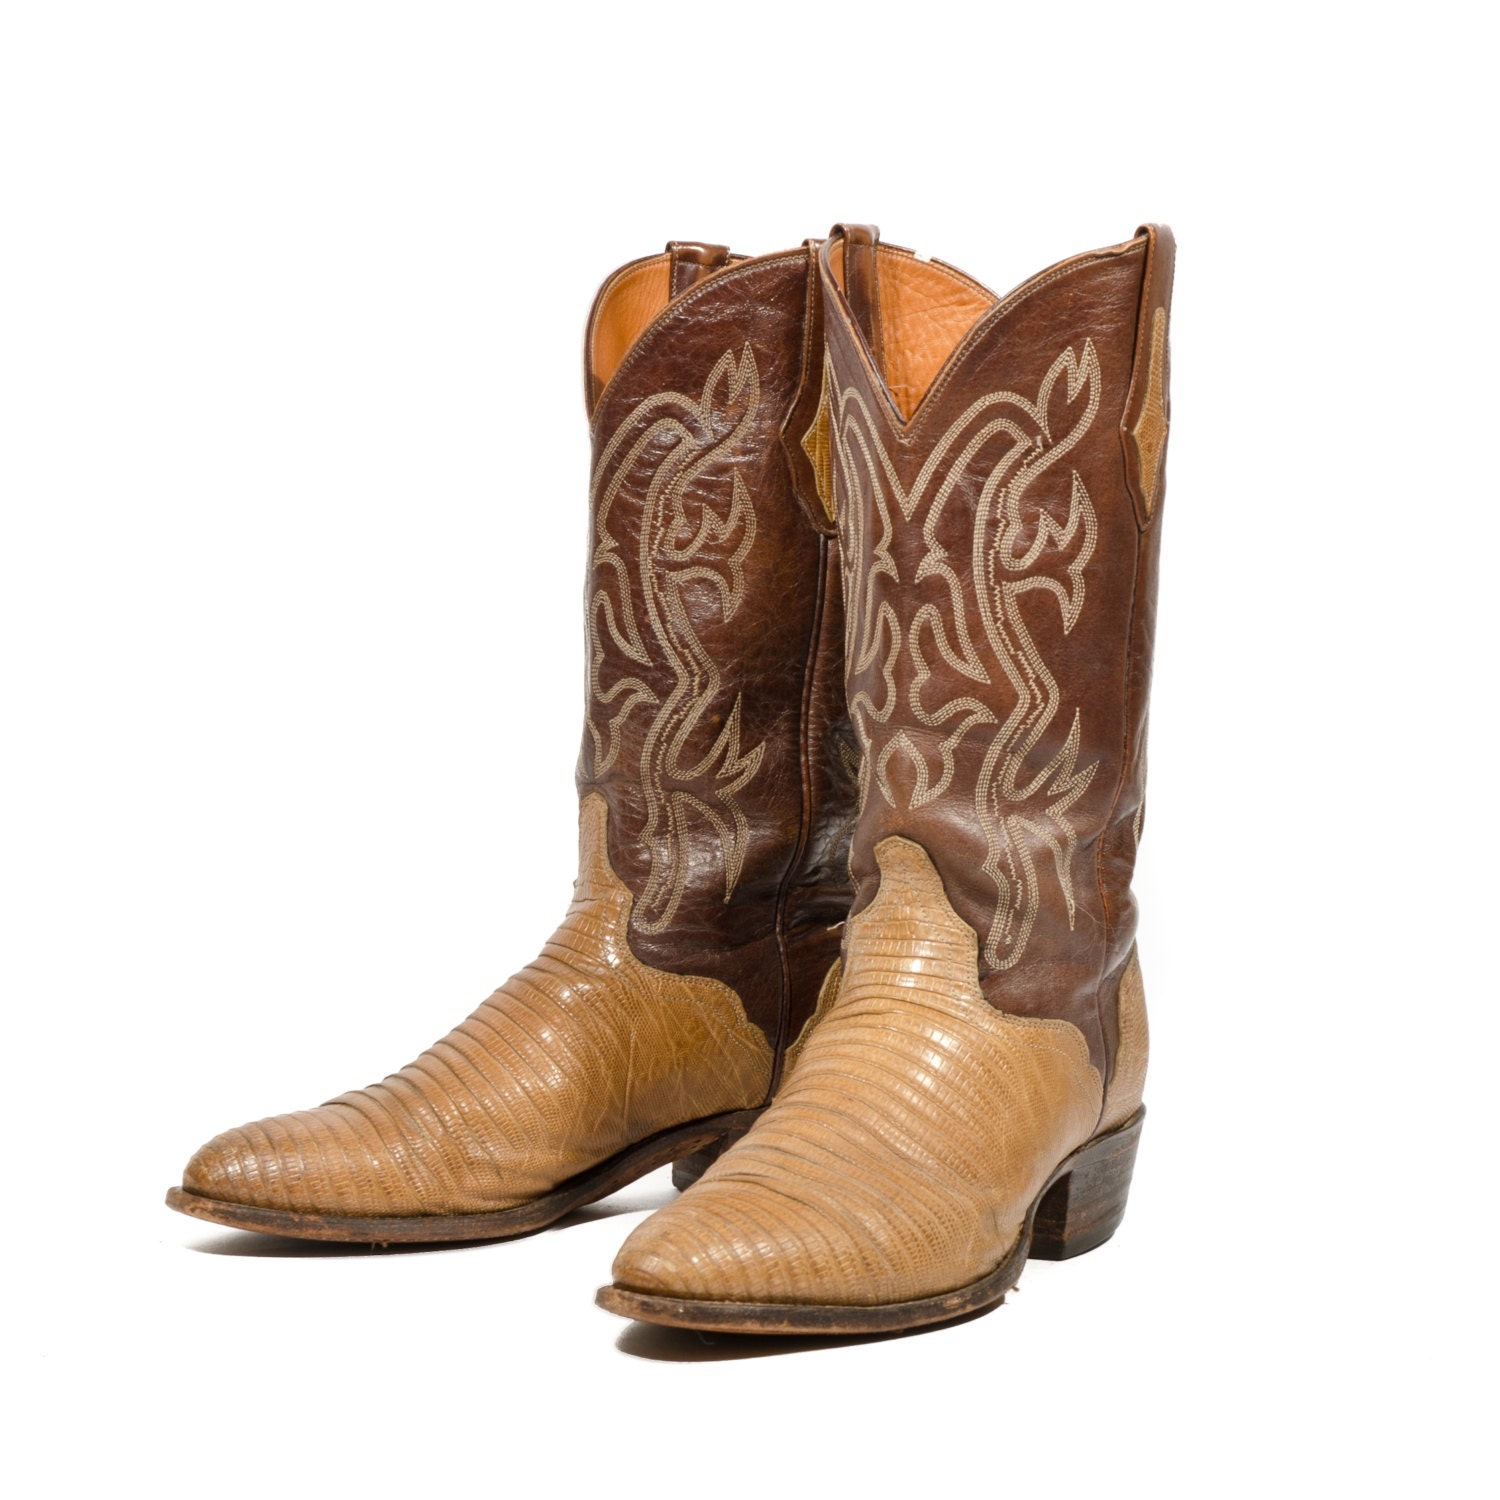 El Dorado Brown Cowboy Boots Men Lizard Skin Western by ShopNDG